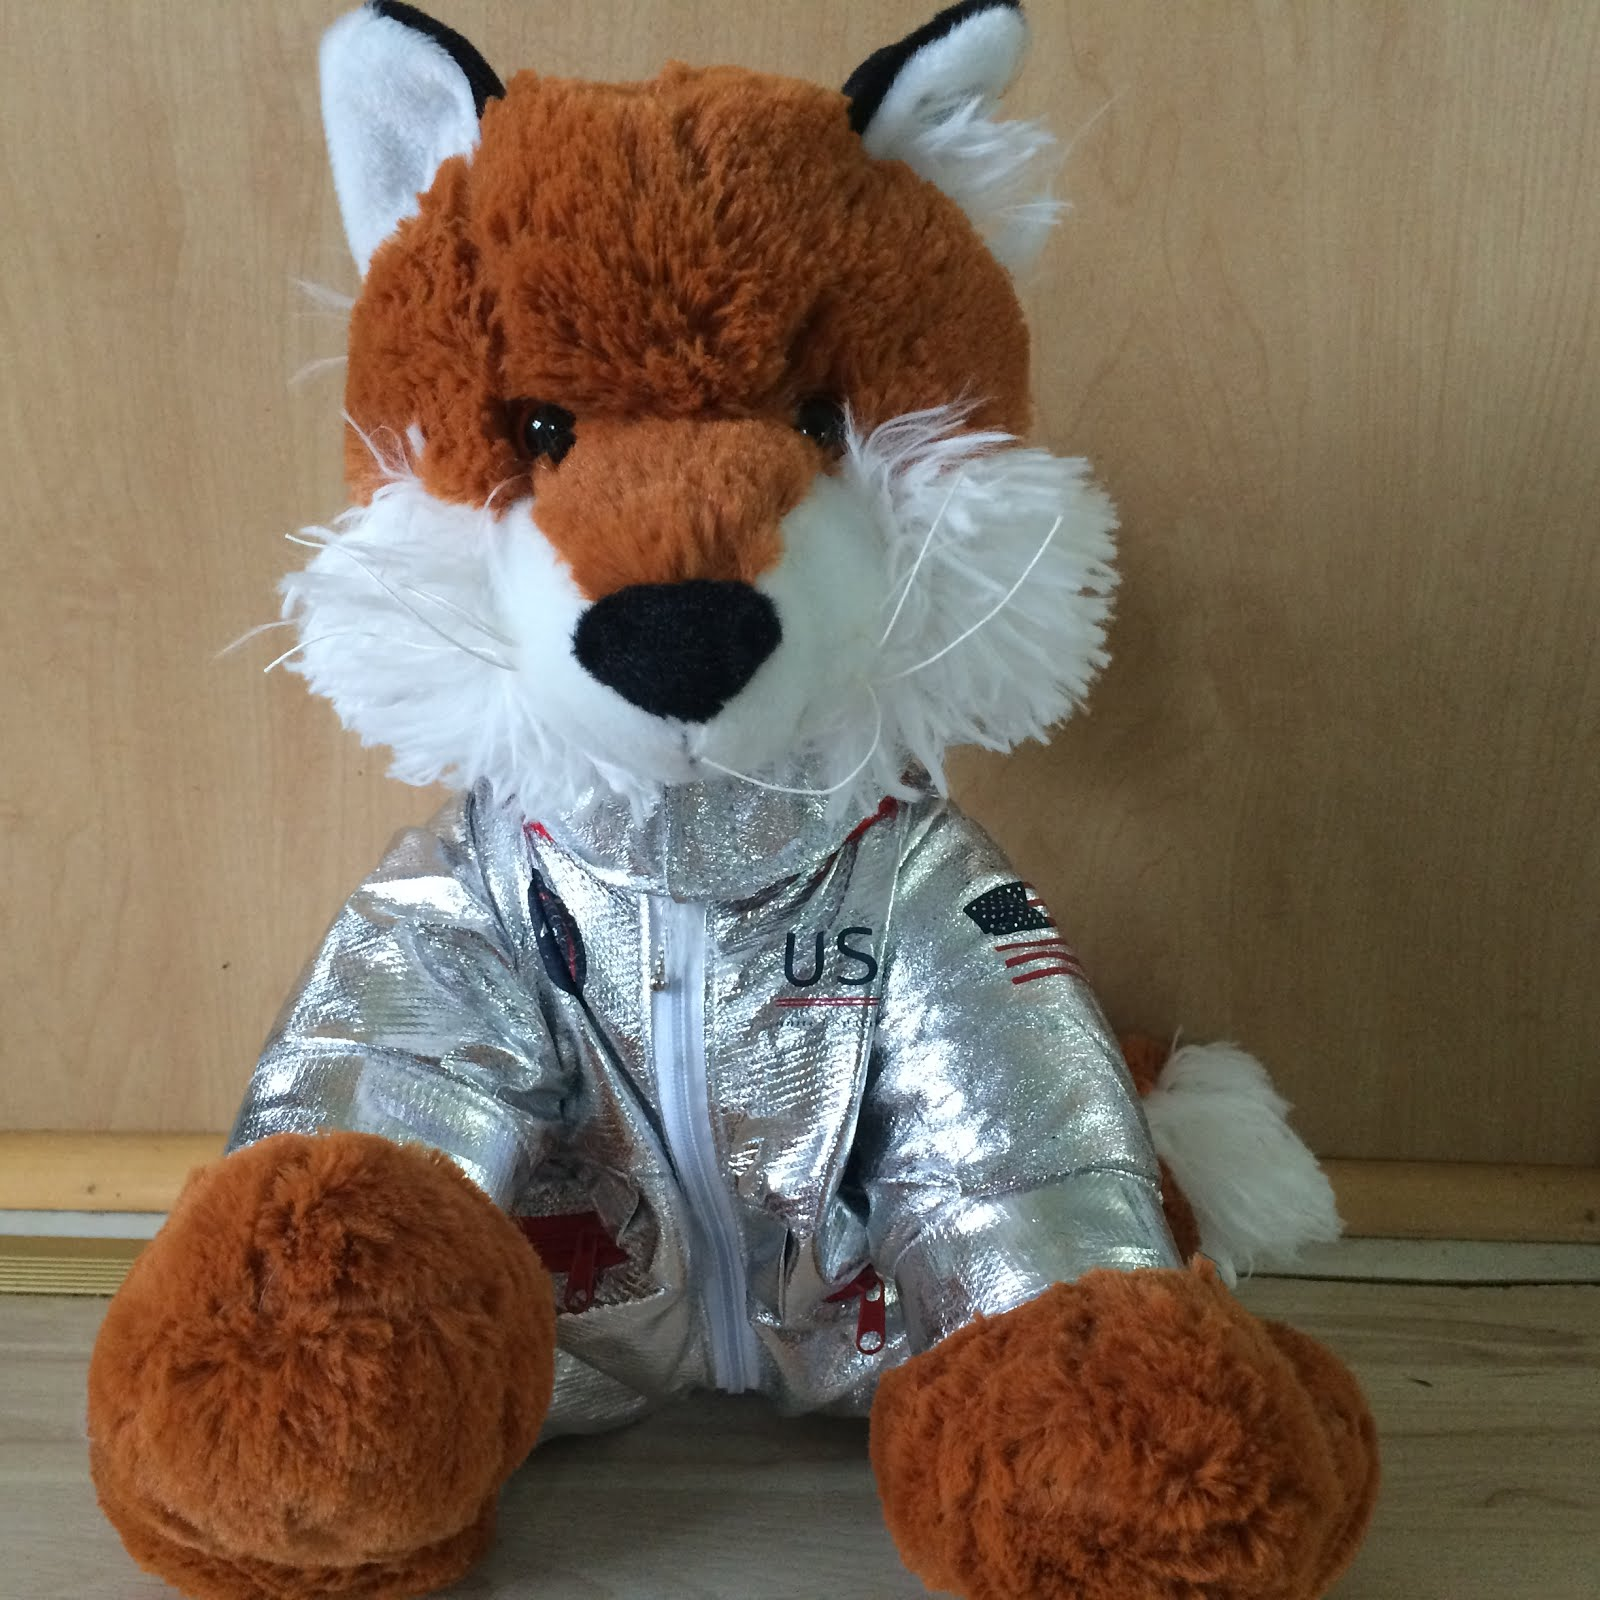 Meet Futuristic Fox